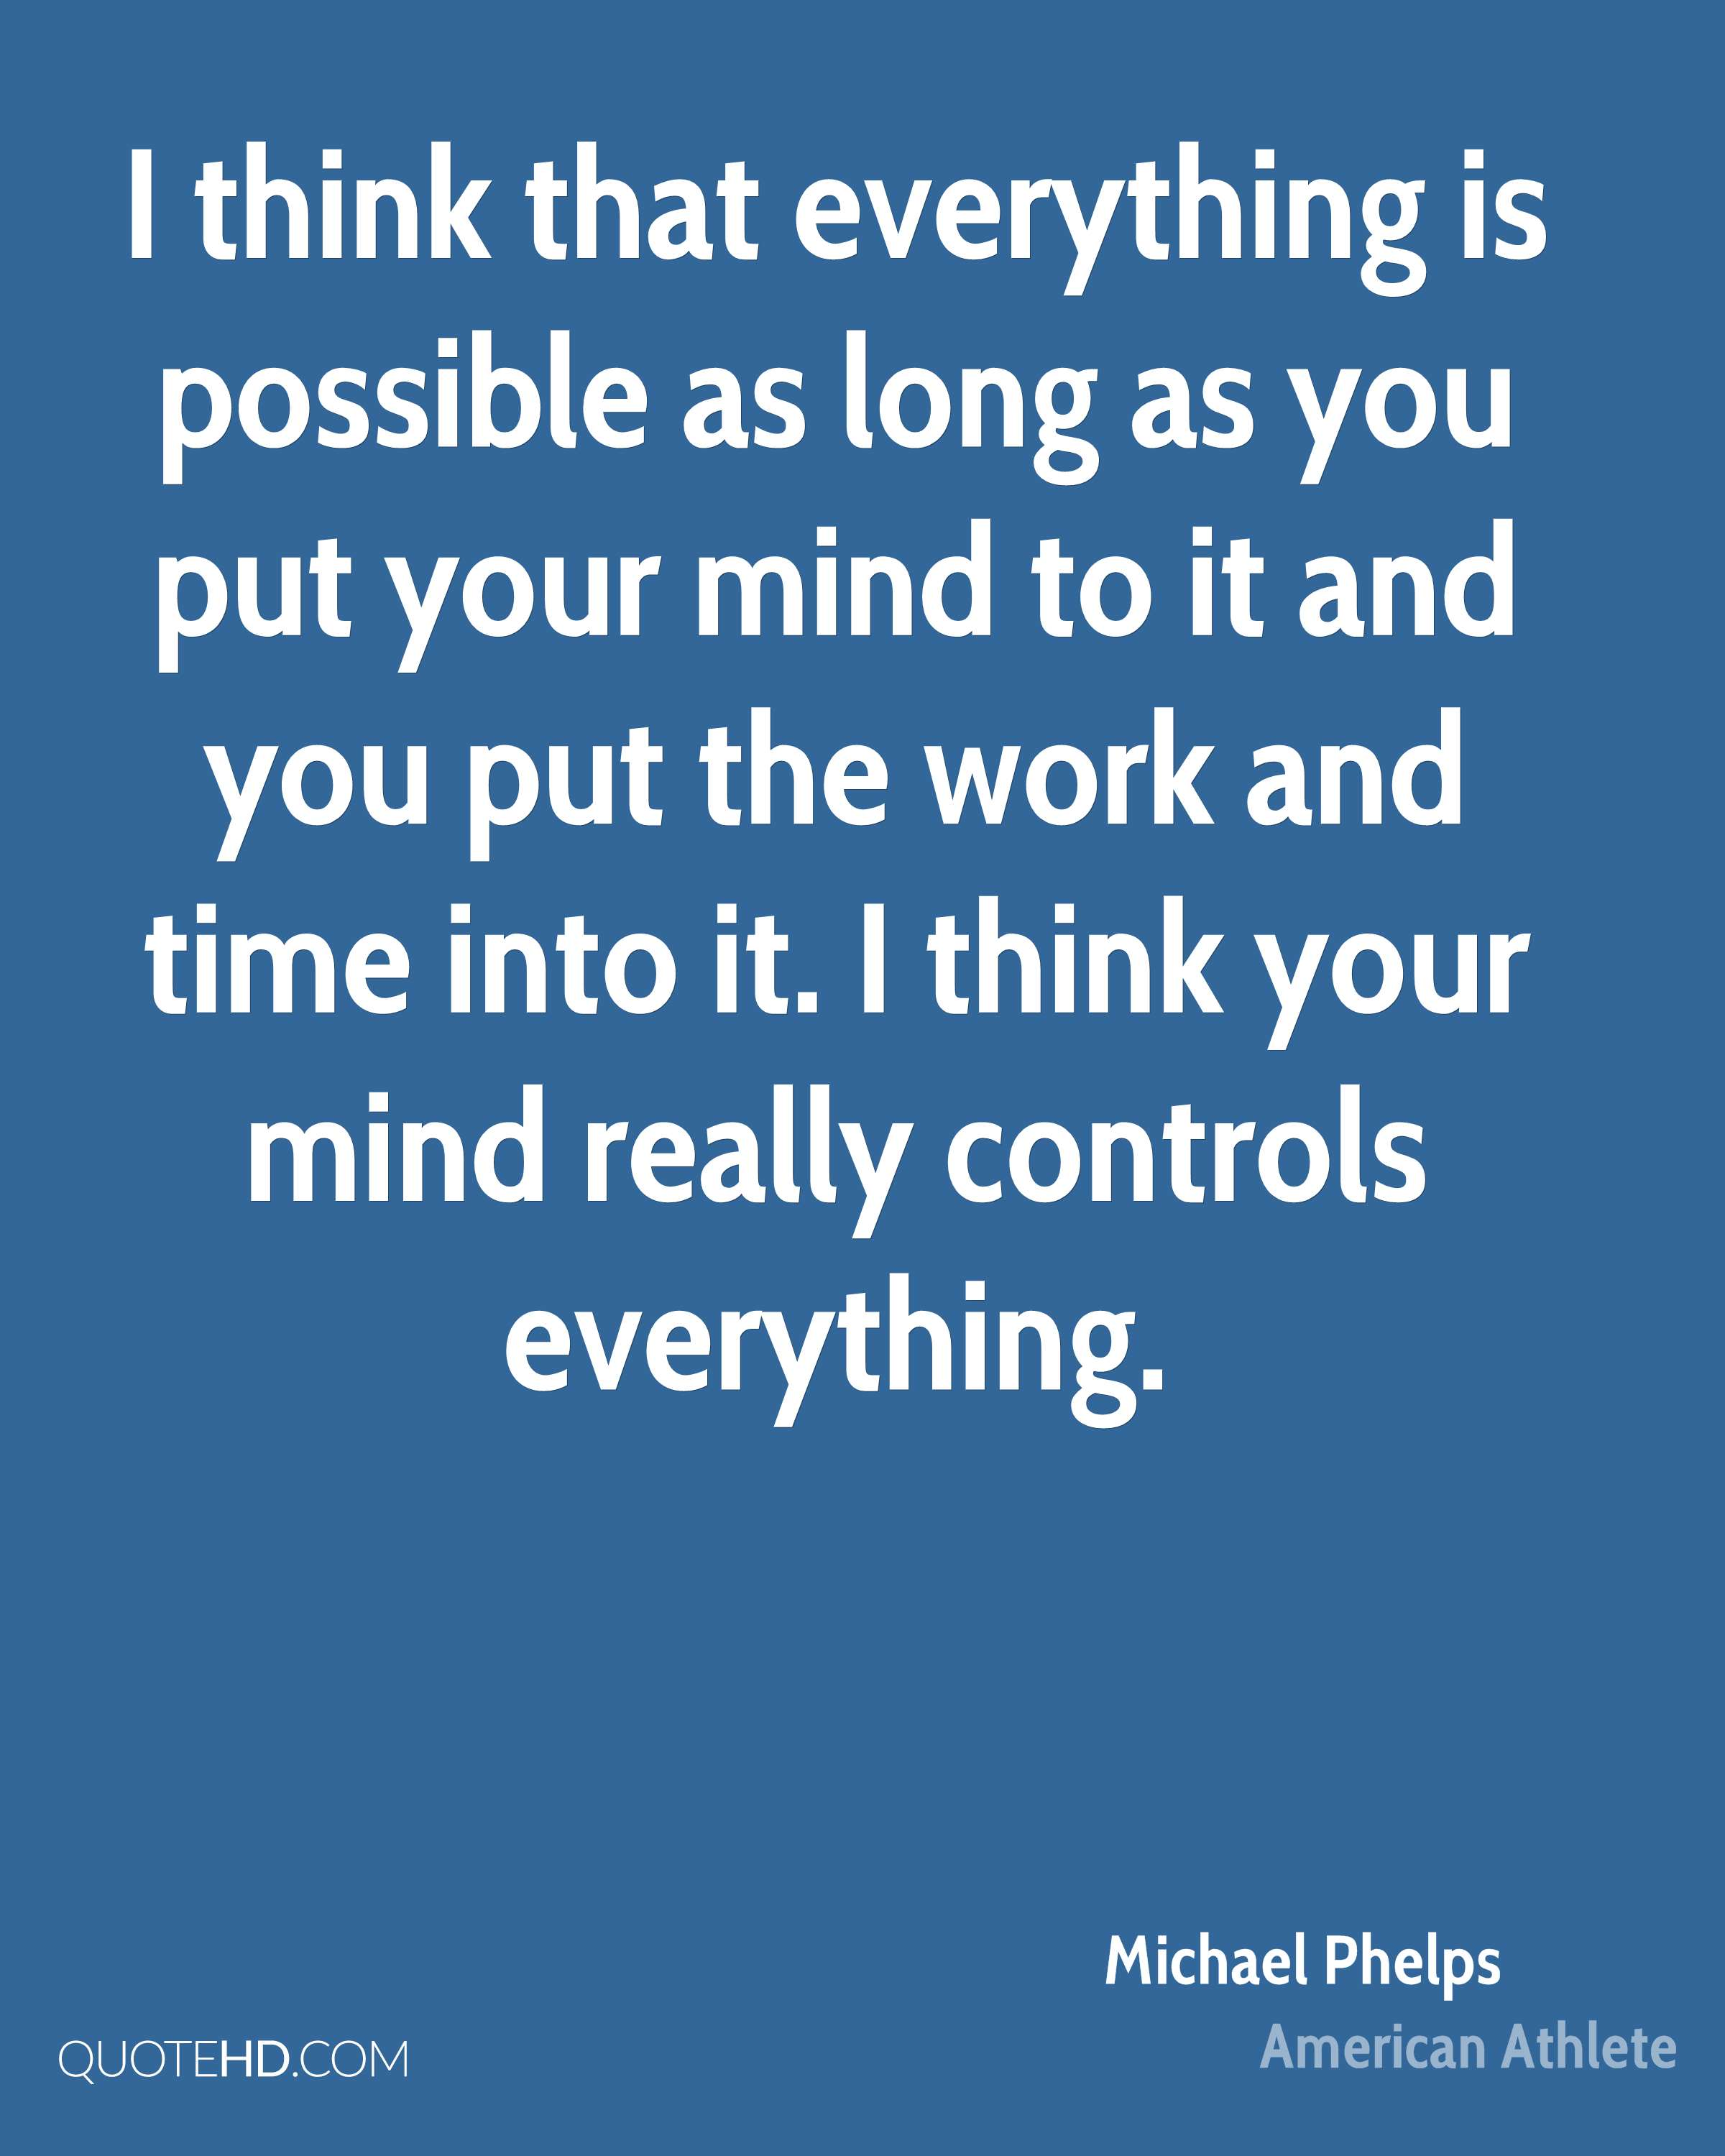 I think that everything is possible as long as you put your mind to it and you put the work and time into it. I think your mind really controls everything.